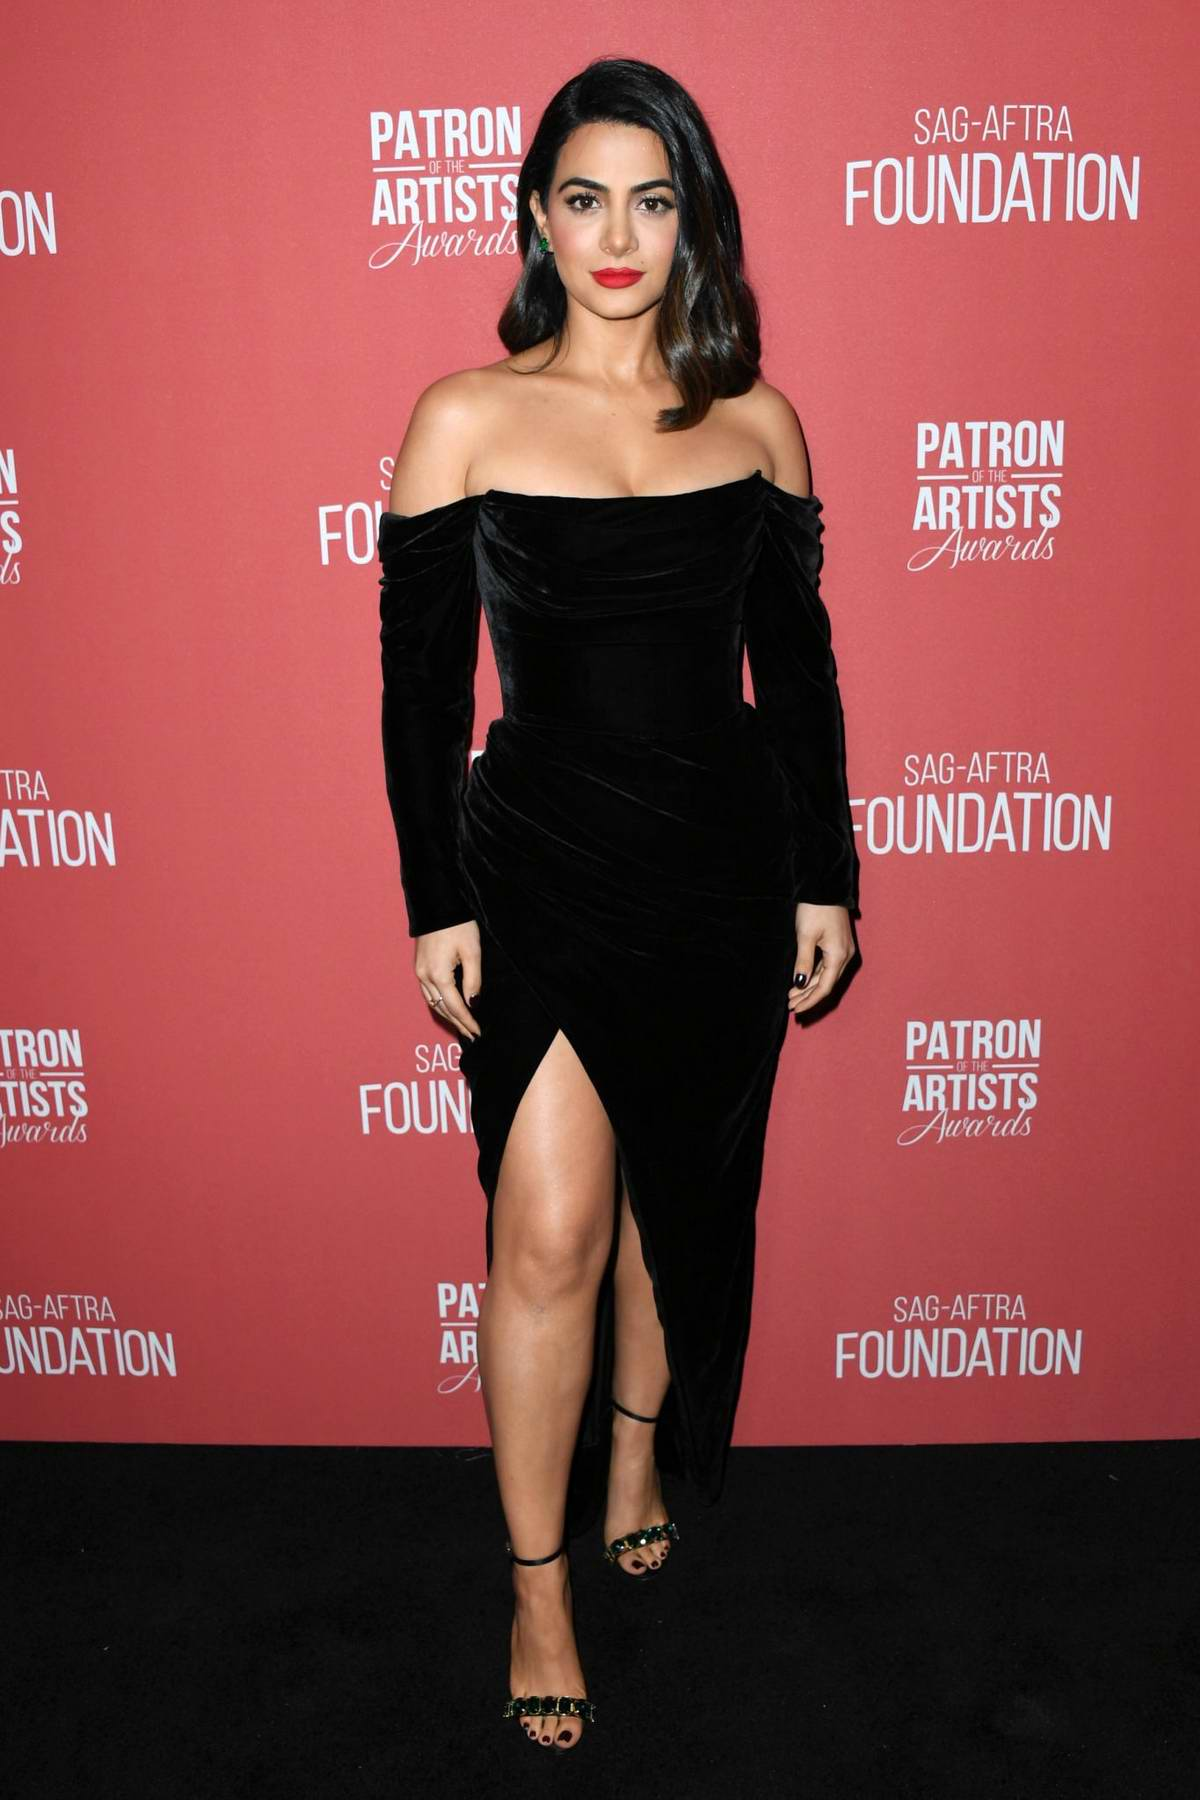 Emeraude Toubia attends the 4th Annual Patron of the Artists Awards in Los Angeles